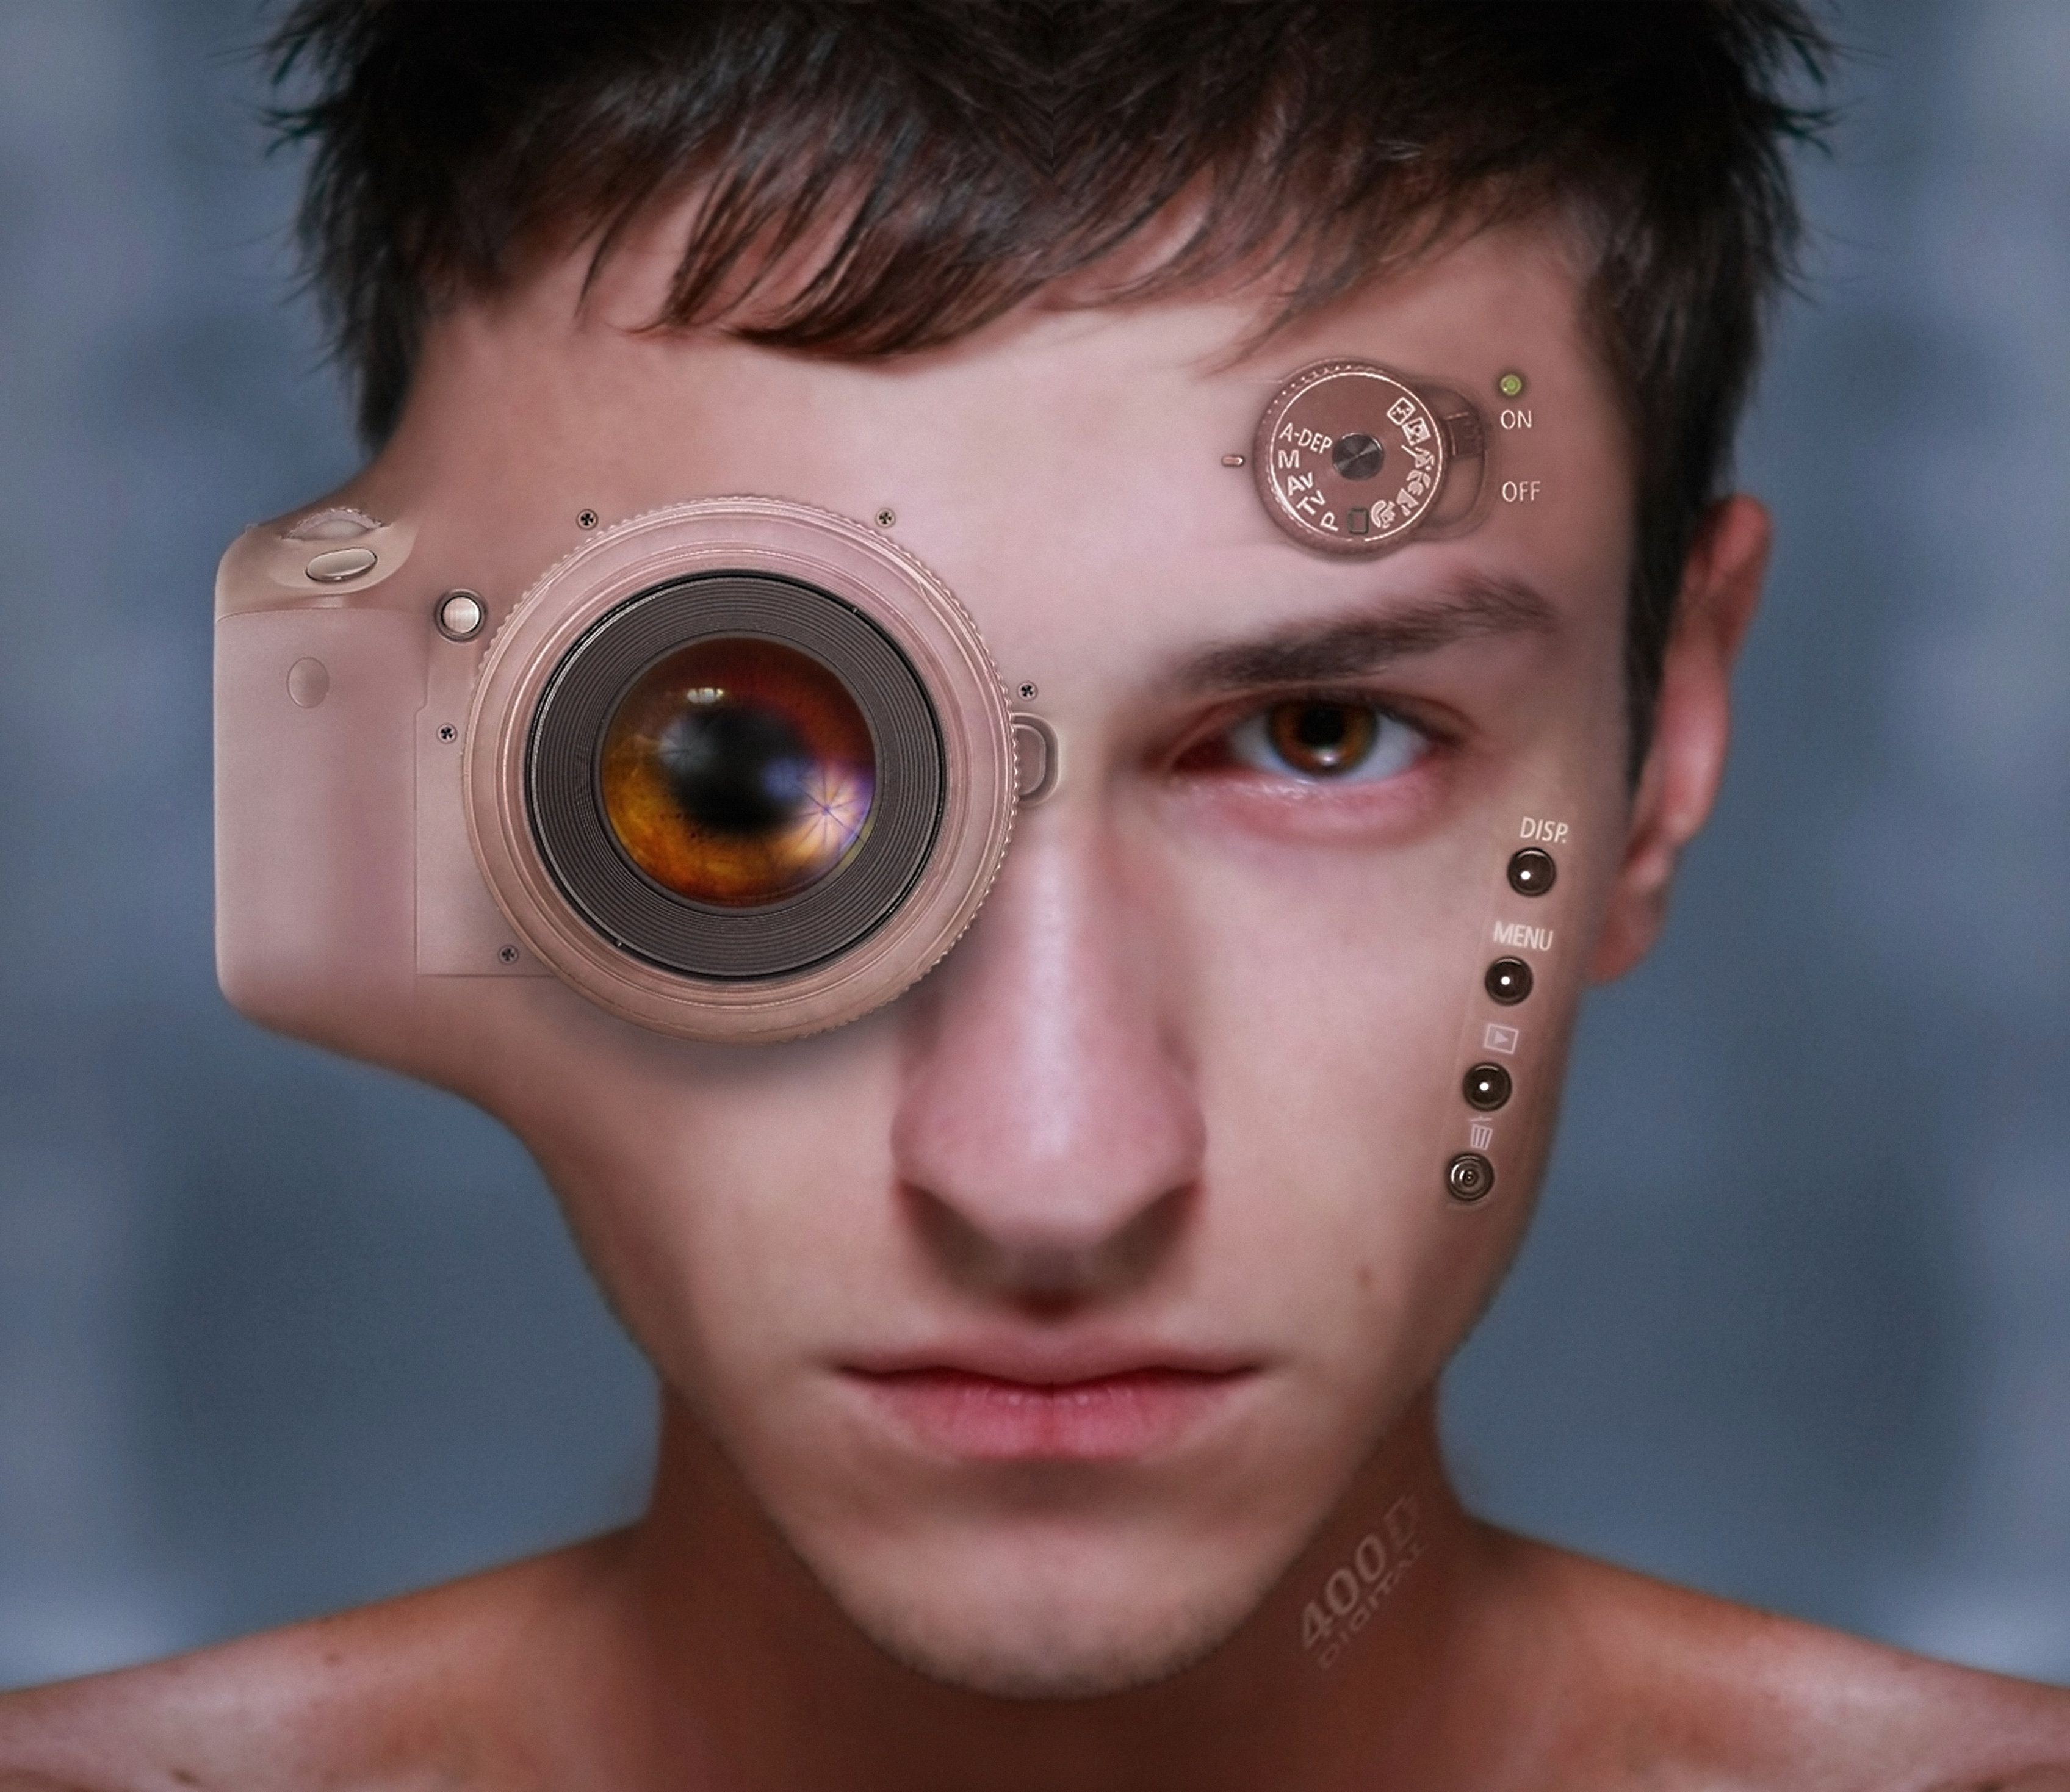 A young man with a camera embedded in his face